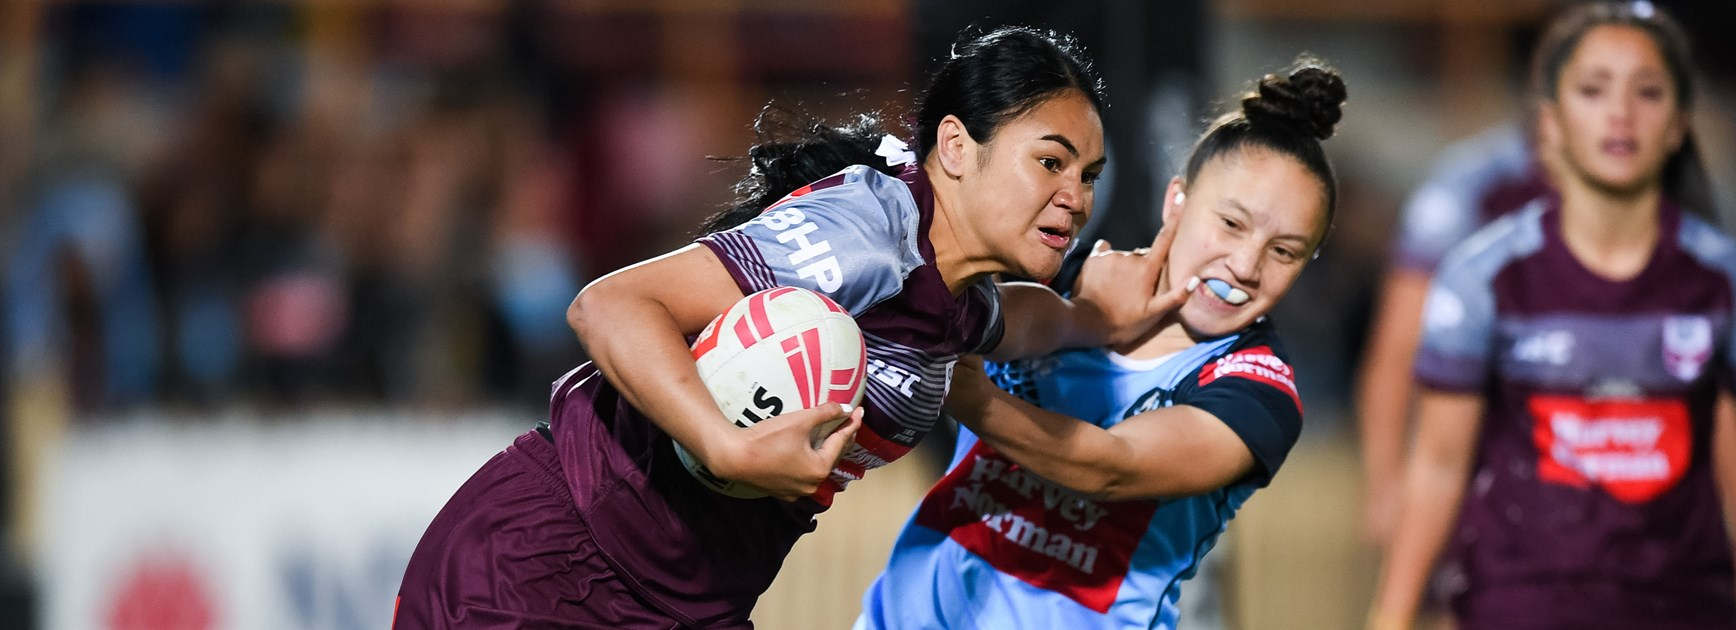 2019 NRLW signings: Squads confirmed for second season